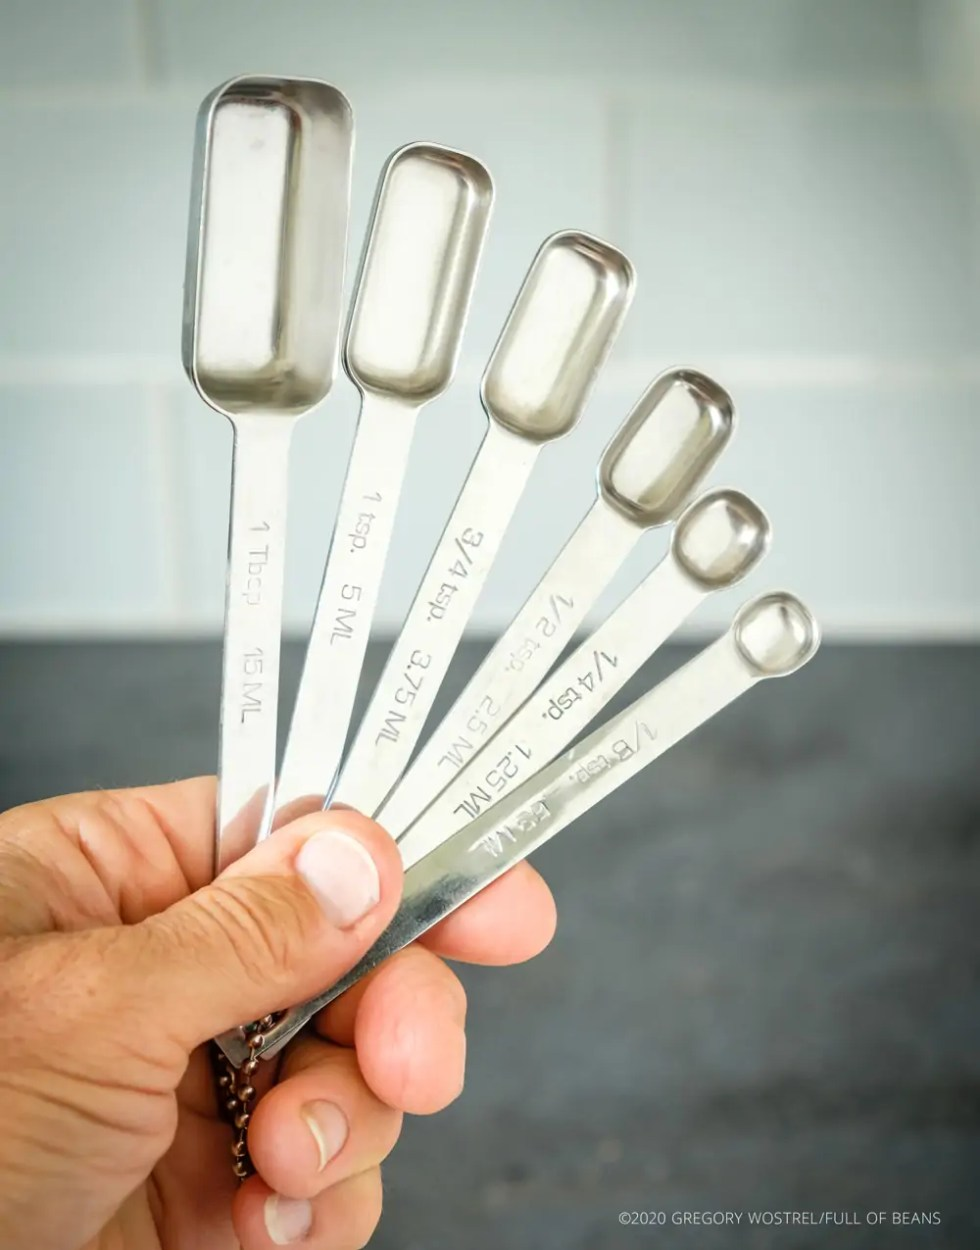 Full set of rectangular measuring spoons